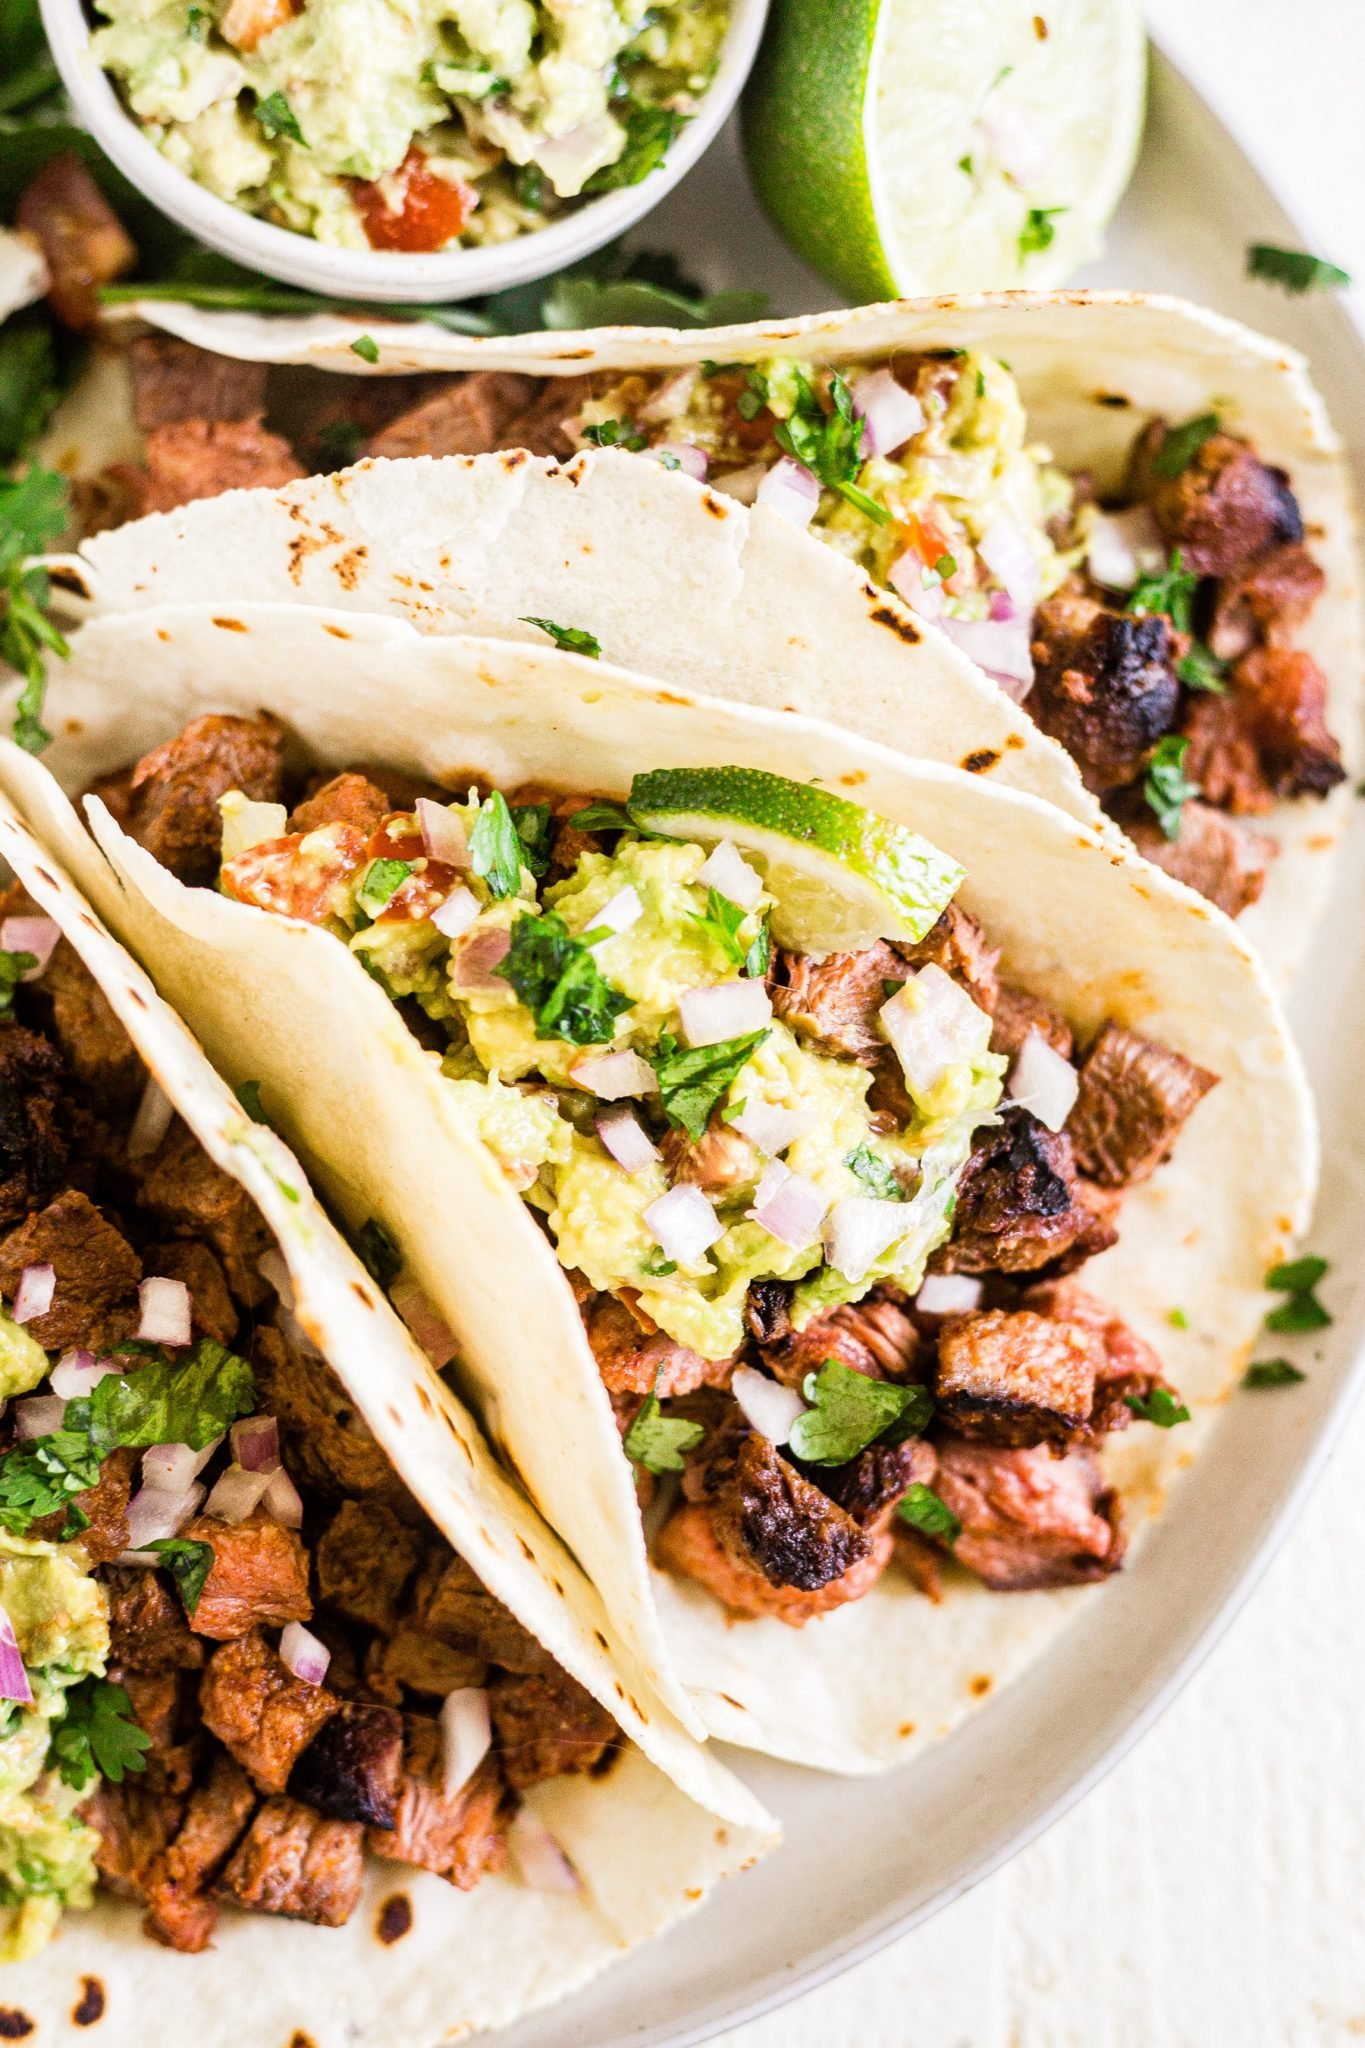 three carne asada tacos on a white plate with fresh guacamole, onion and cilantro